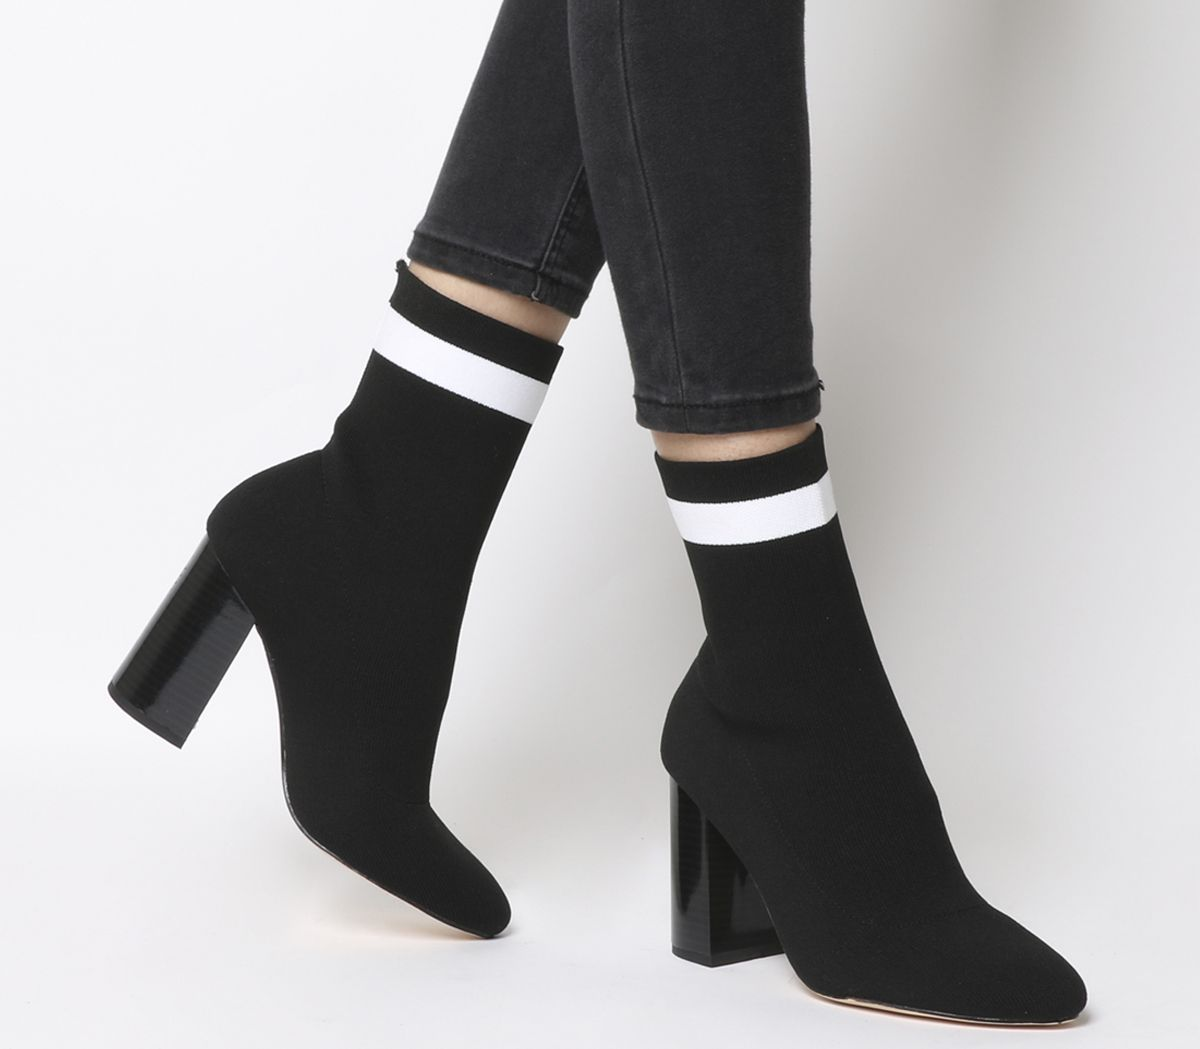 af5a9d182 Office Alexis Sock Boots Black With White Stripe - Ankle Boots